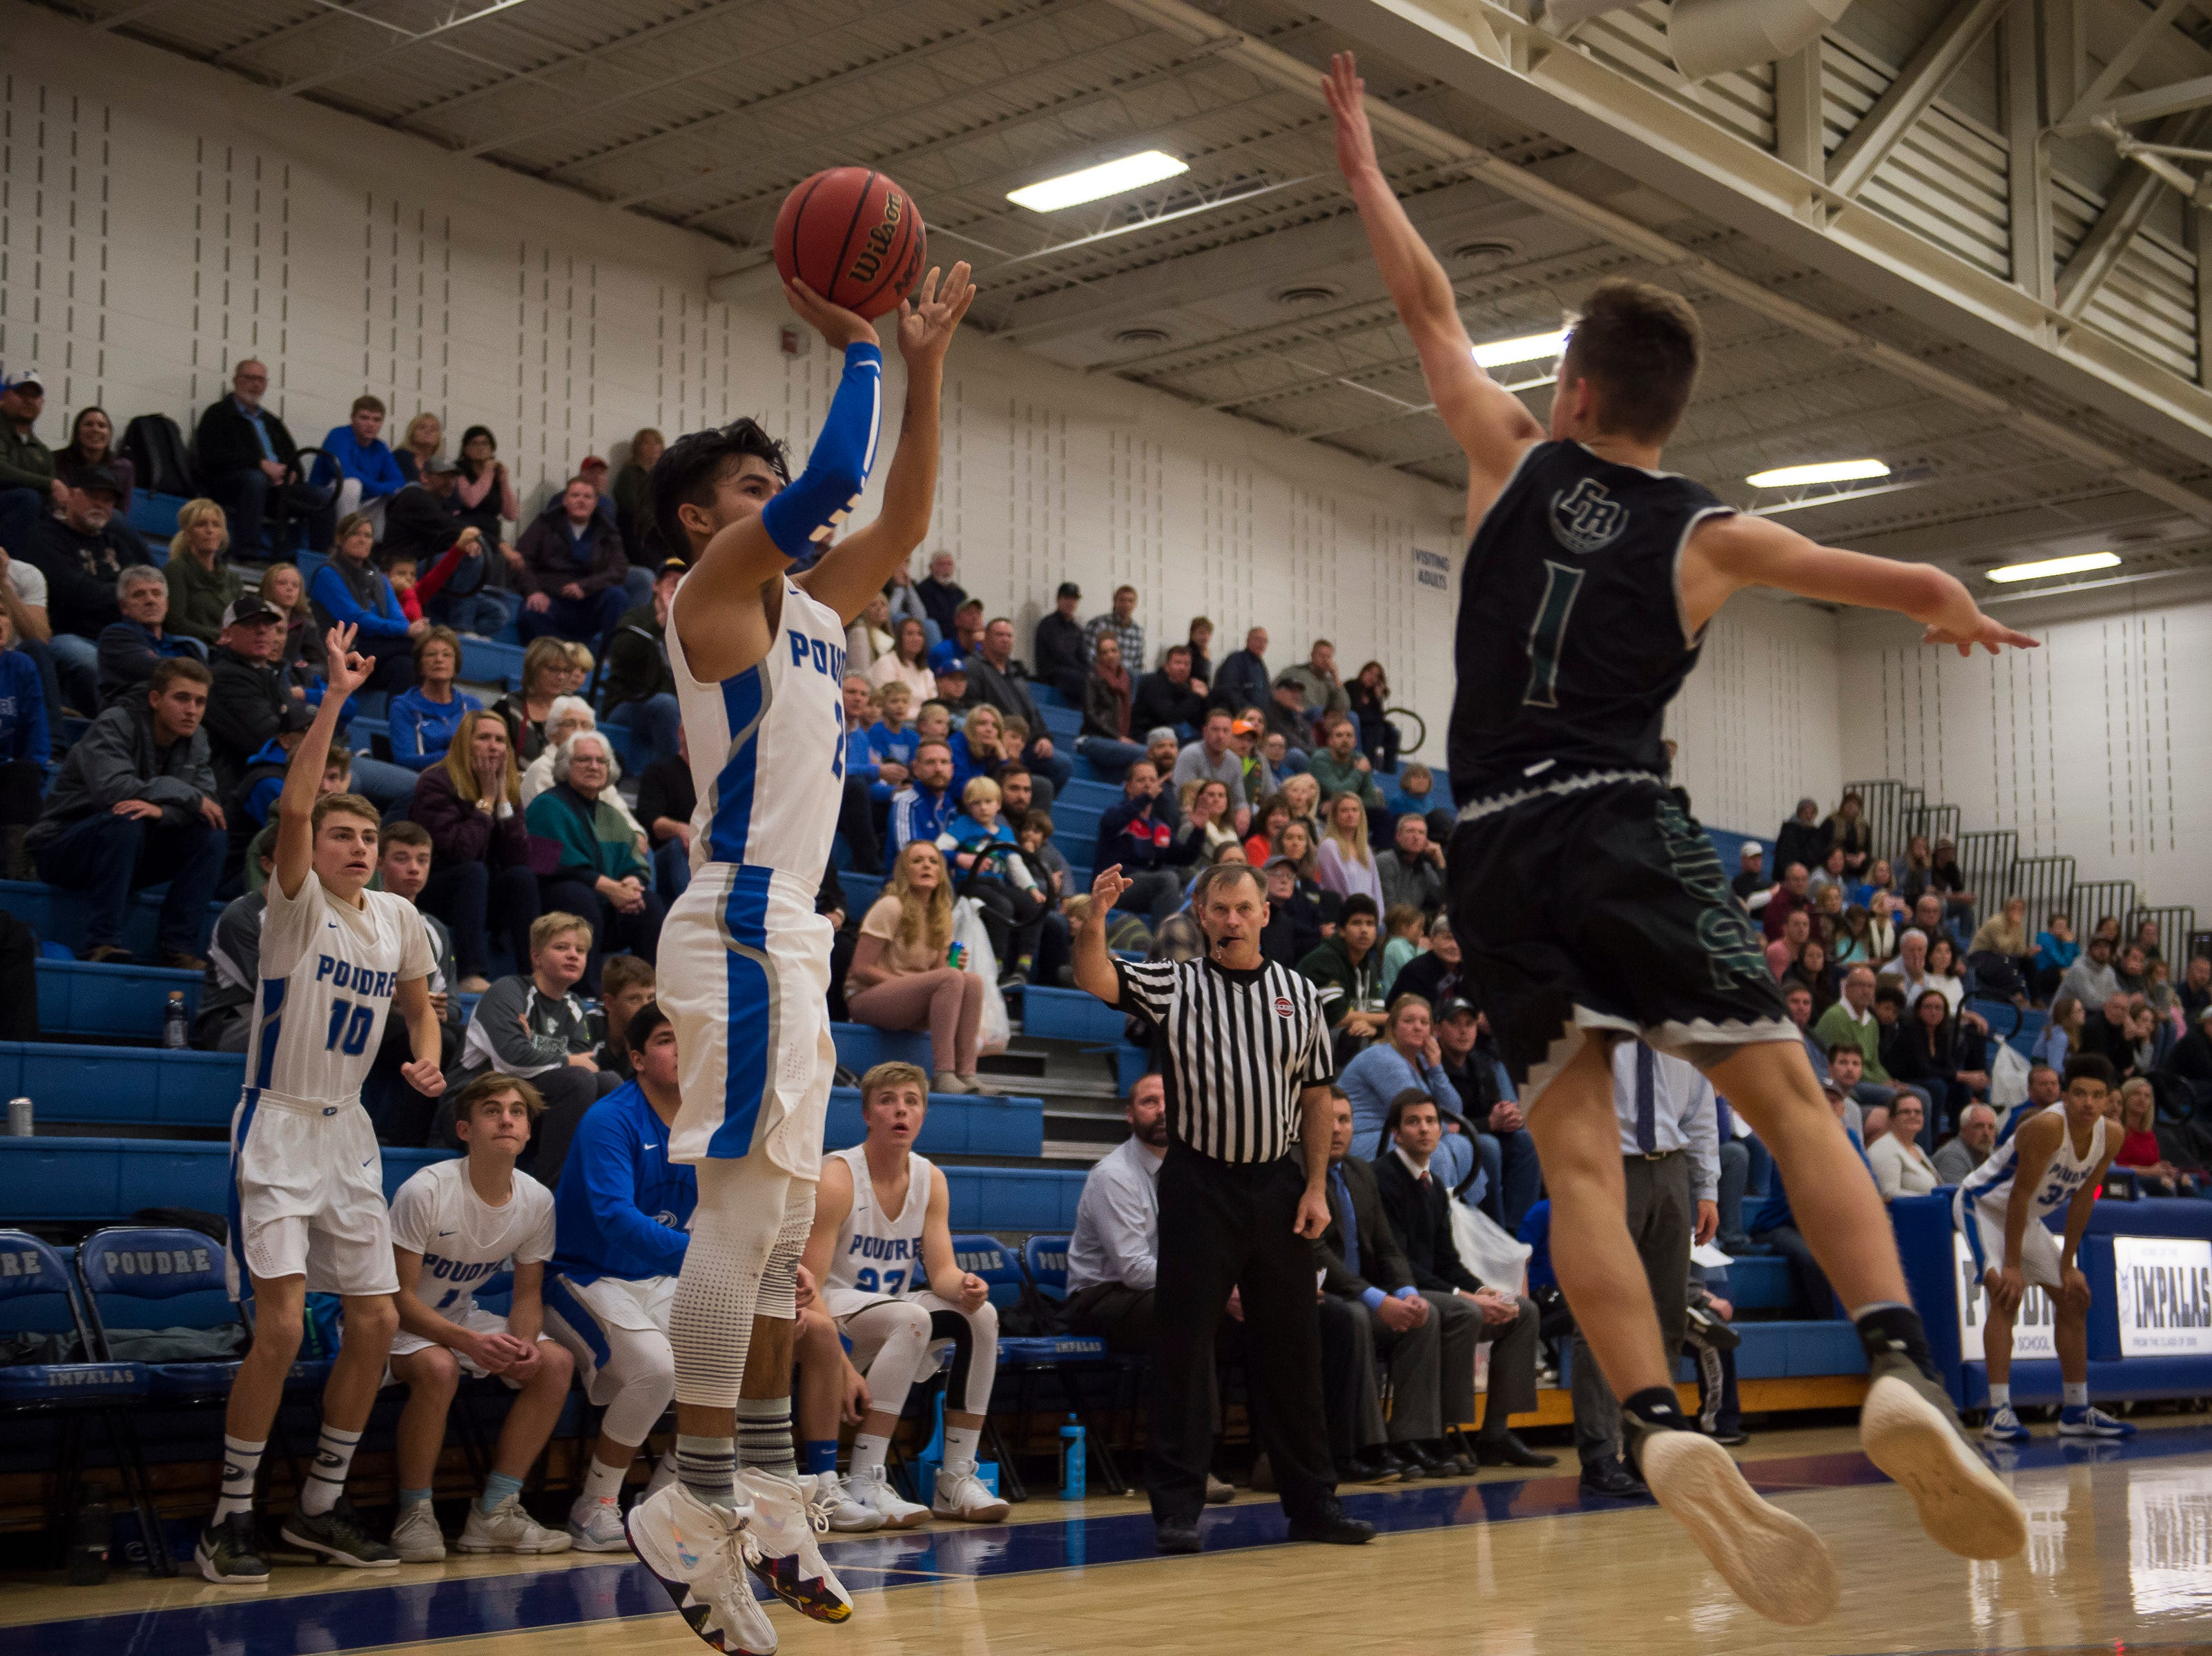 Poudre High School junior Sergio Tarango (2) puts up a three during a game against Fossil Ridge High School on Tuesday, Dec. 4, 2018, at Poudre High School on Fort Collins, Colo.